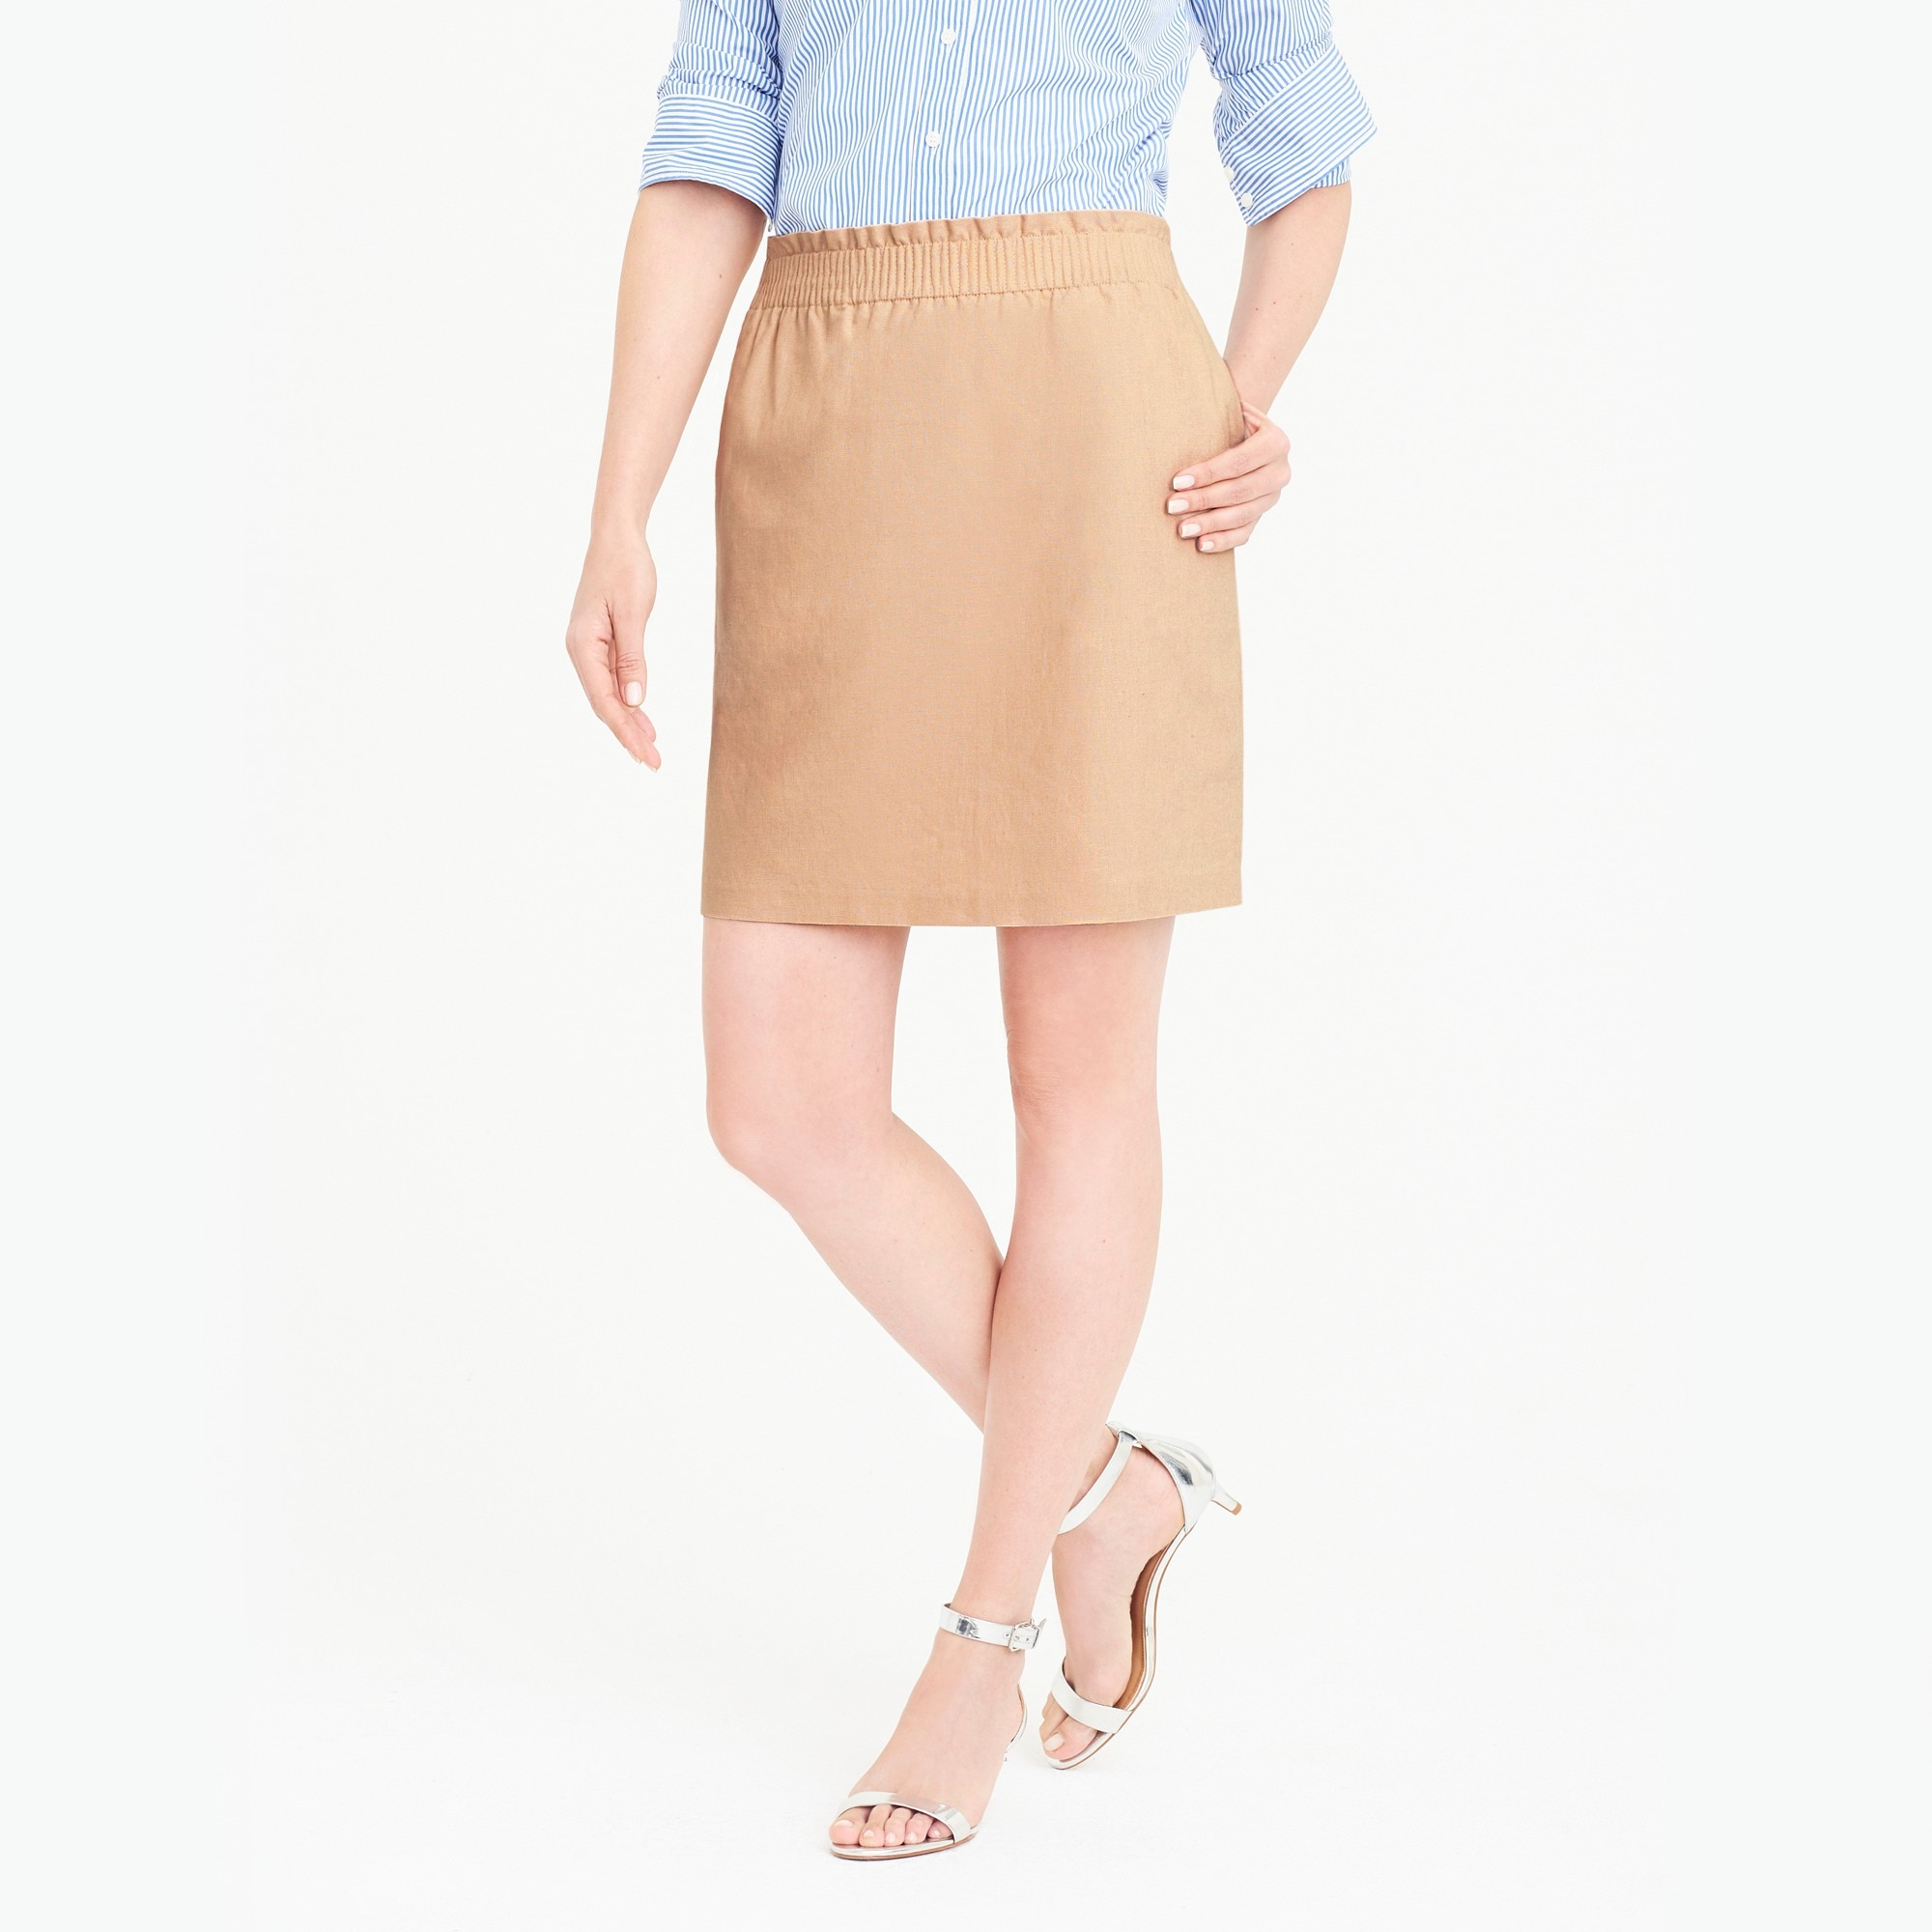 Sidewalk skirt factorywomen the score: tie-shoulder t-shirts and sidewalk skirts c